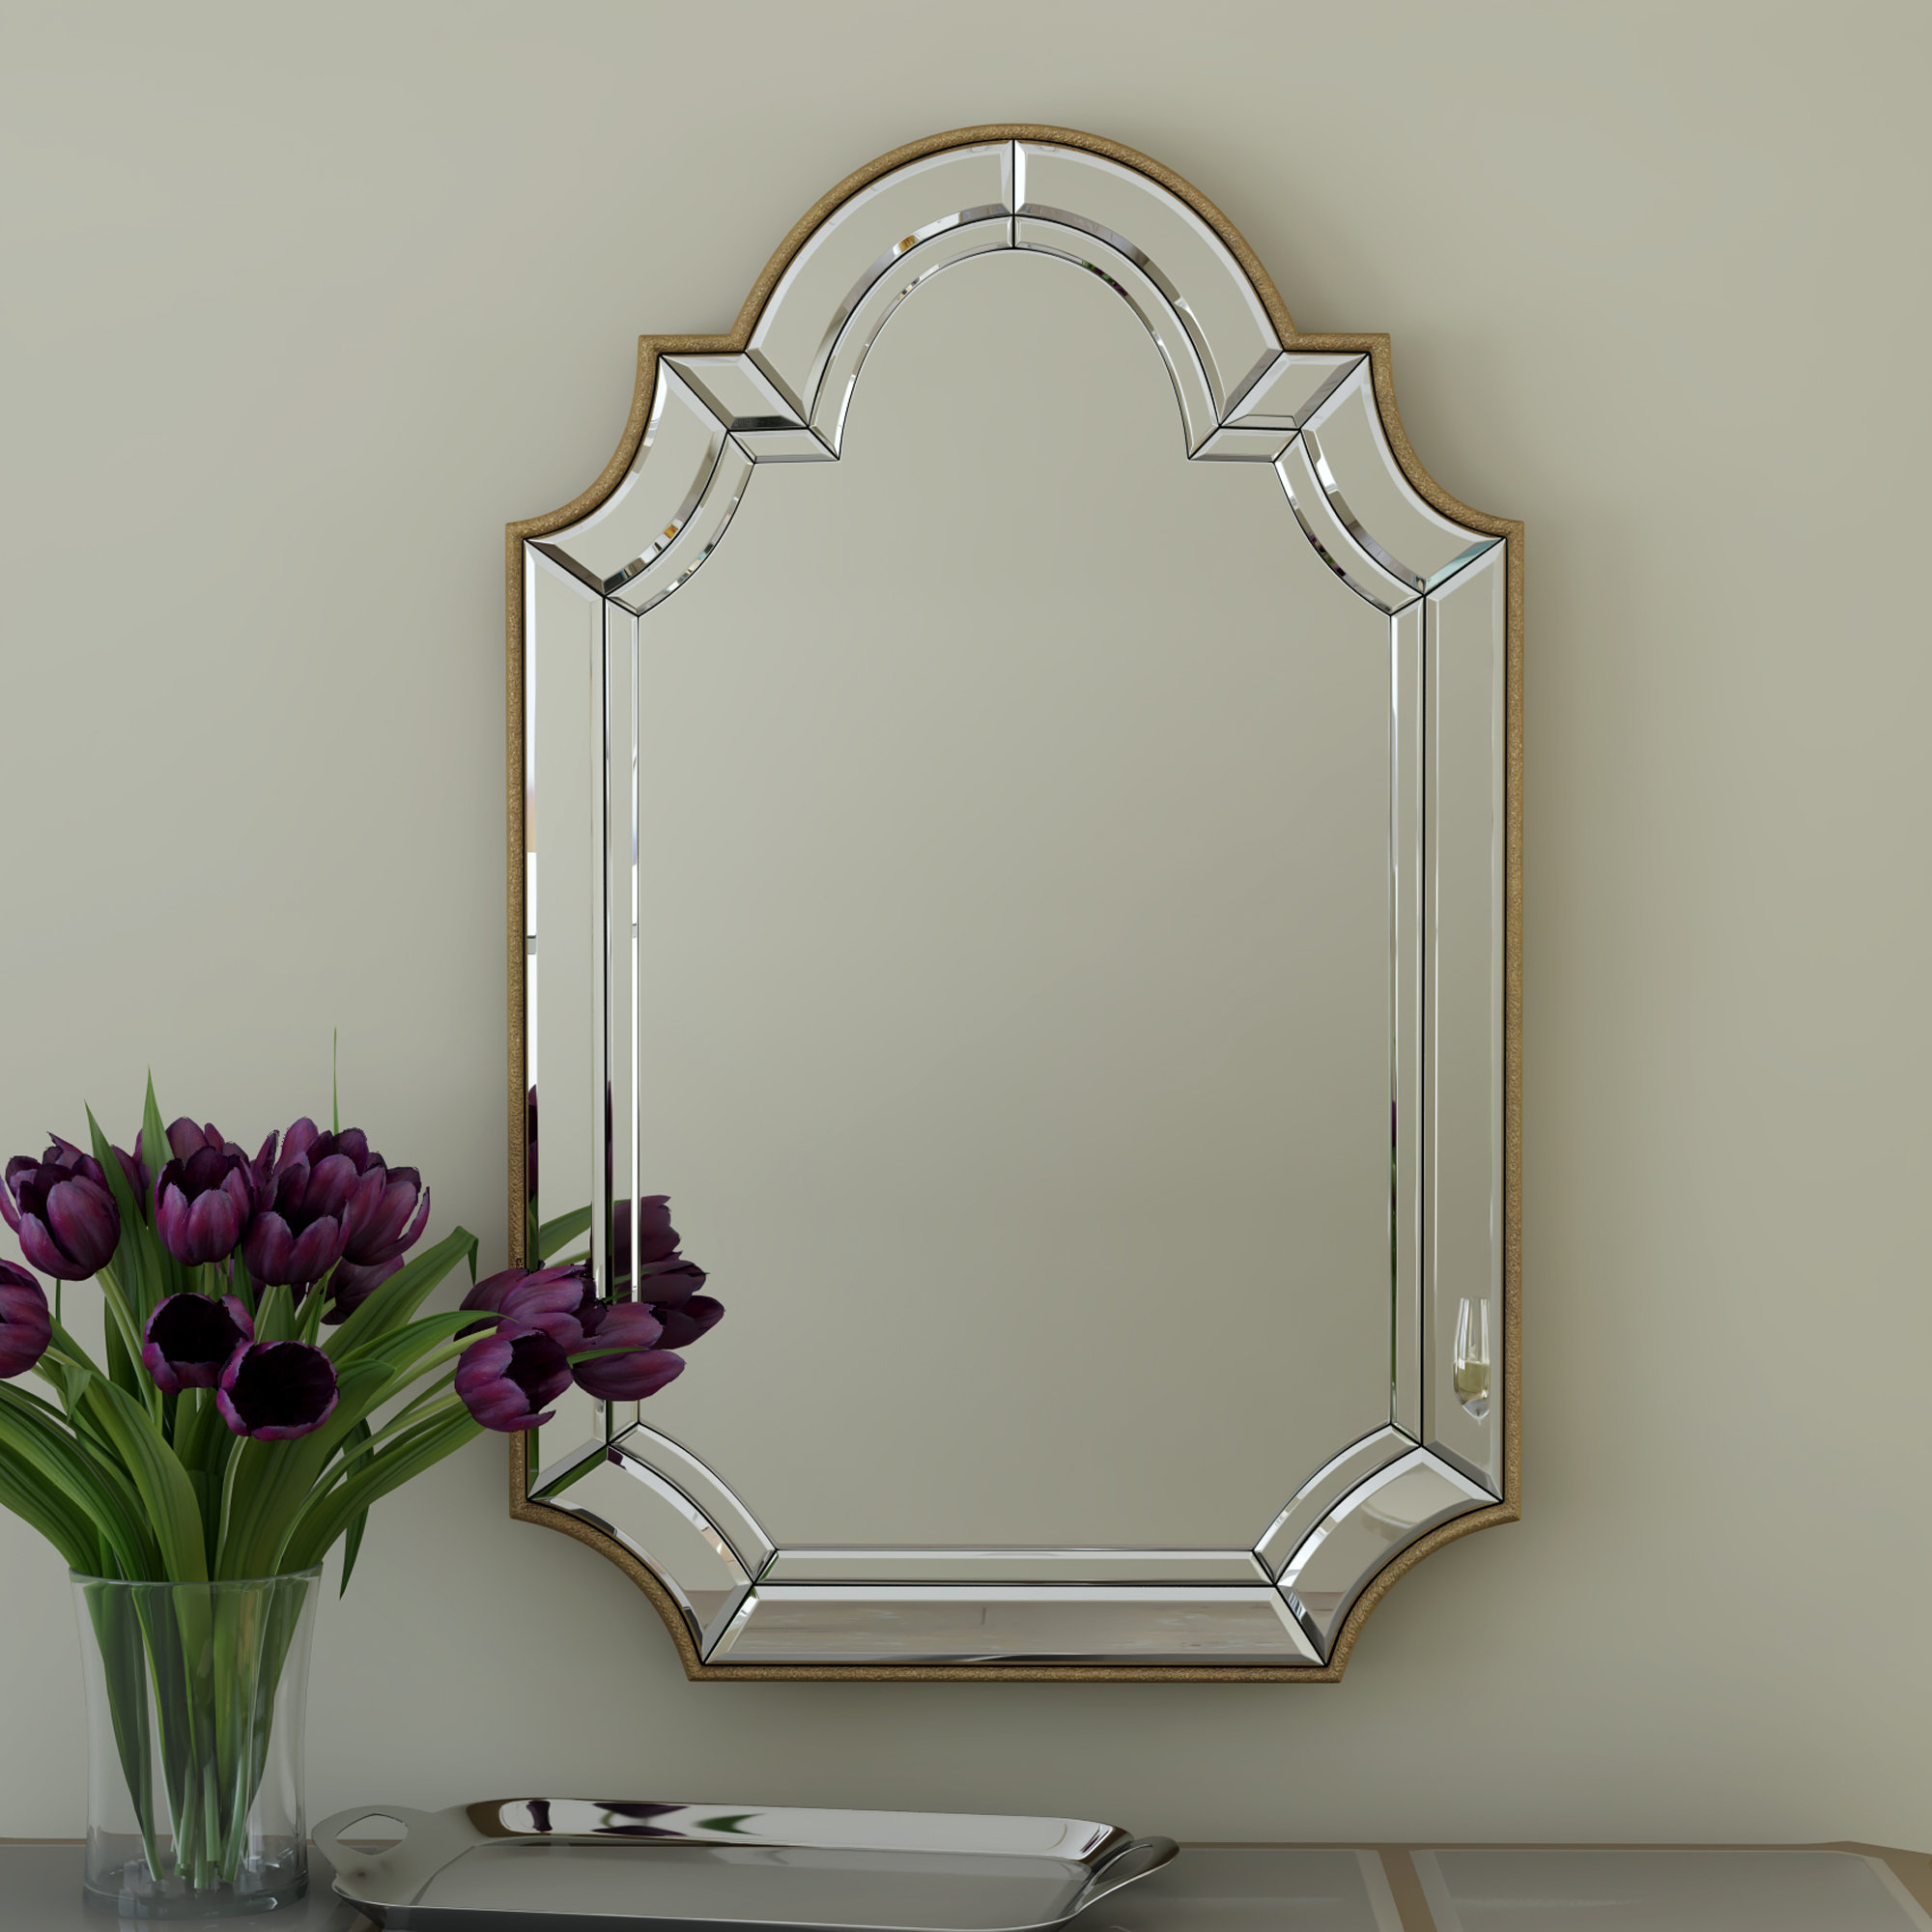 Arch/crowned Top Champagne Wall Mirror with Dariel Tall Arched Scalloped Wall Mirrors (Image 5 of 30)